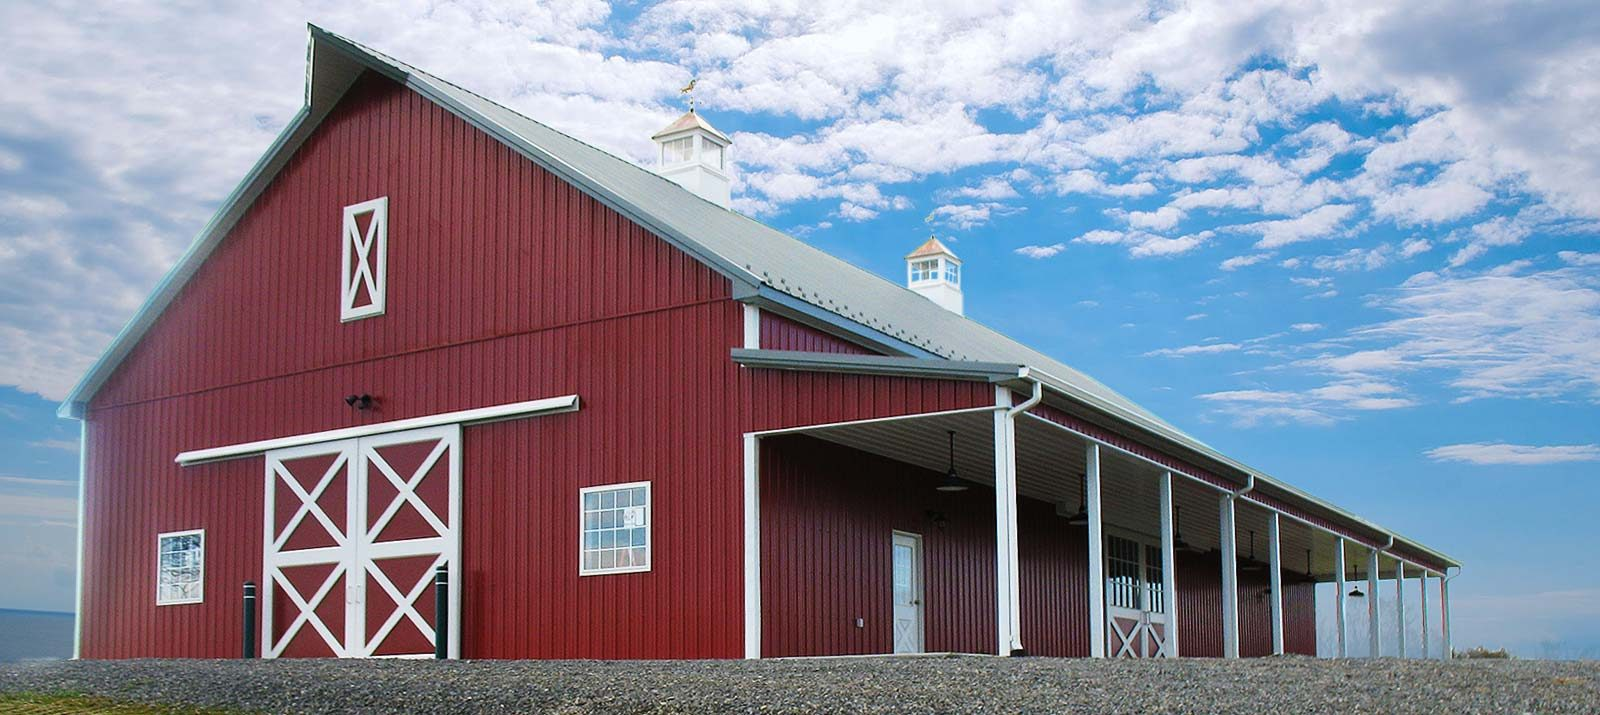 Custom Pole Barns Conestoga Buildings